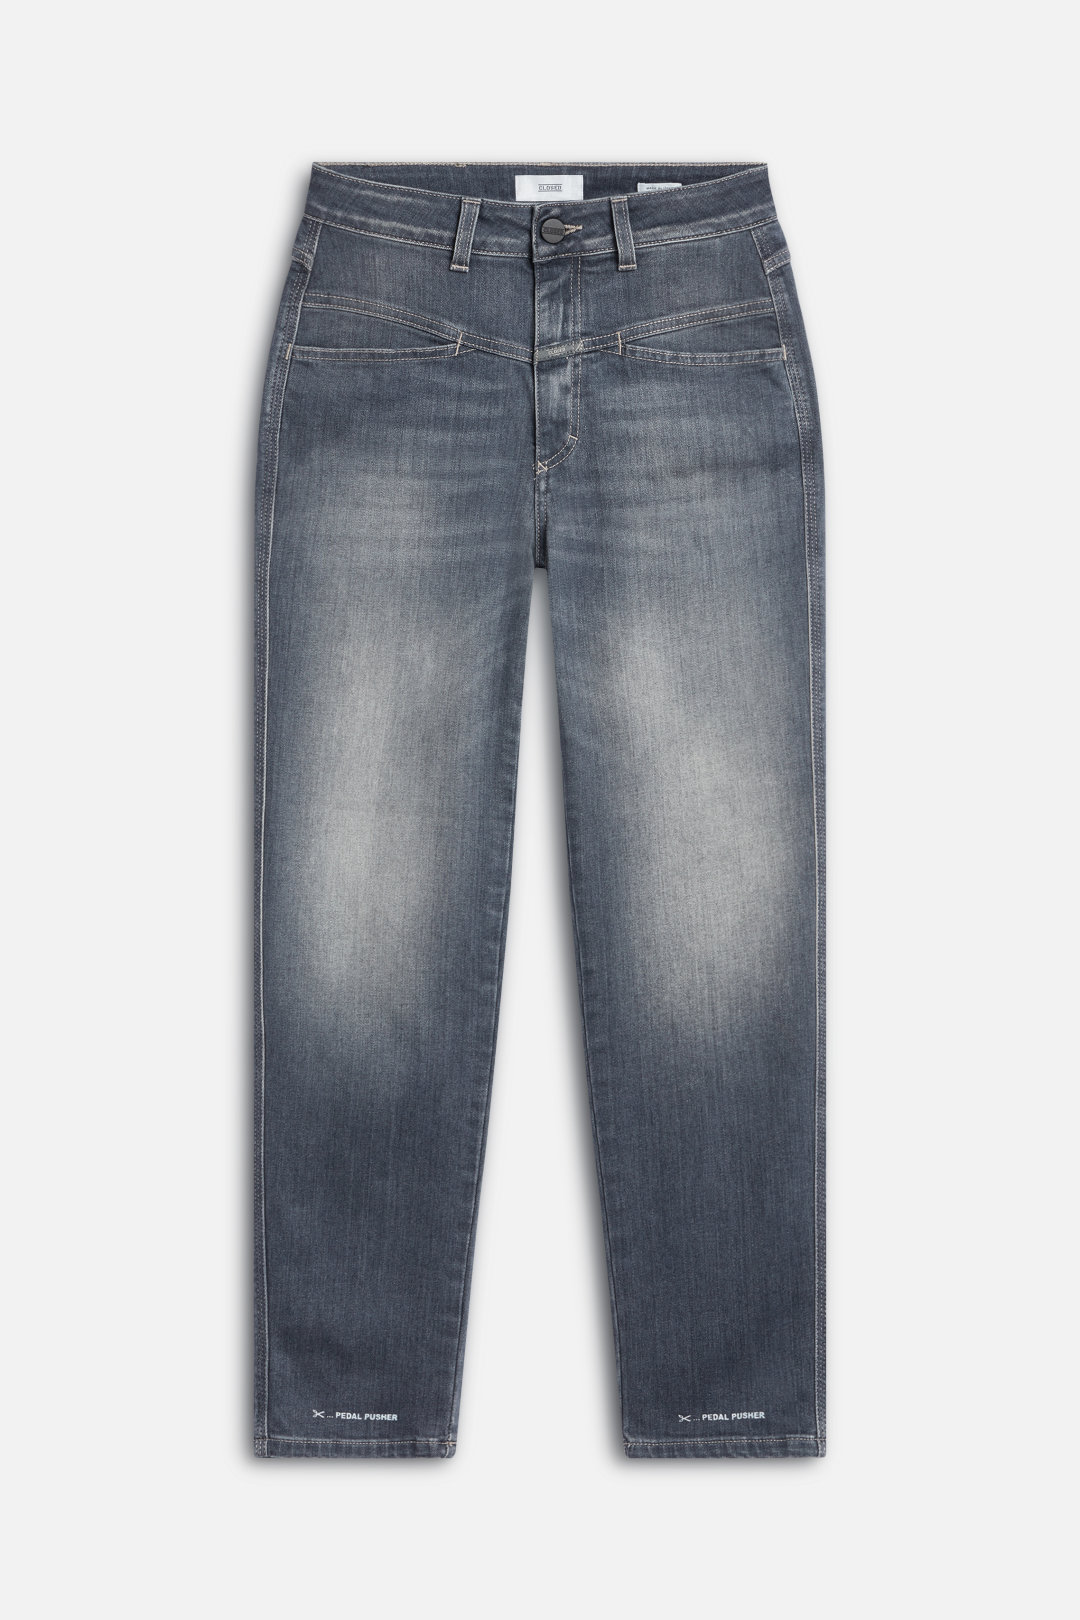 Pedal Pusher Super Stretch Grey Denim